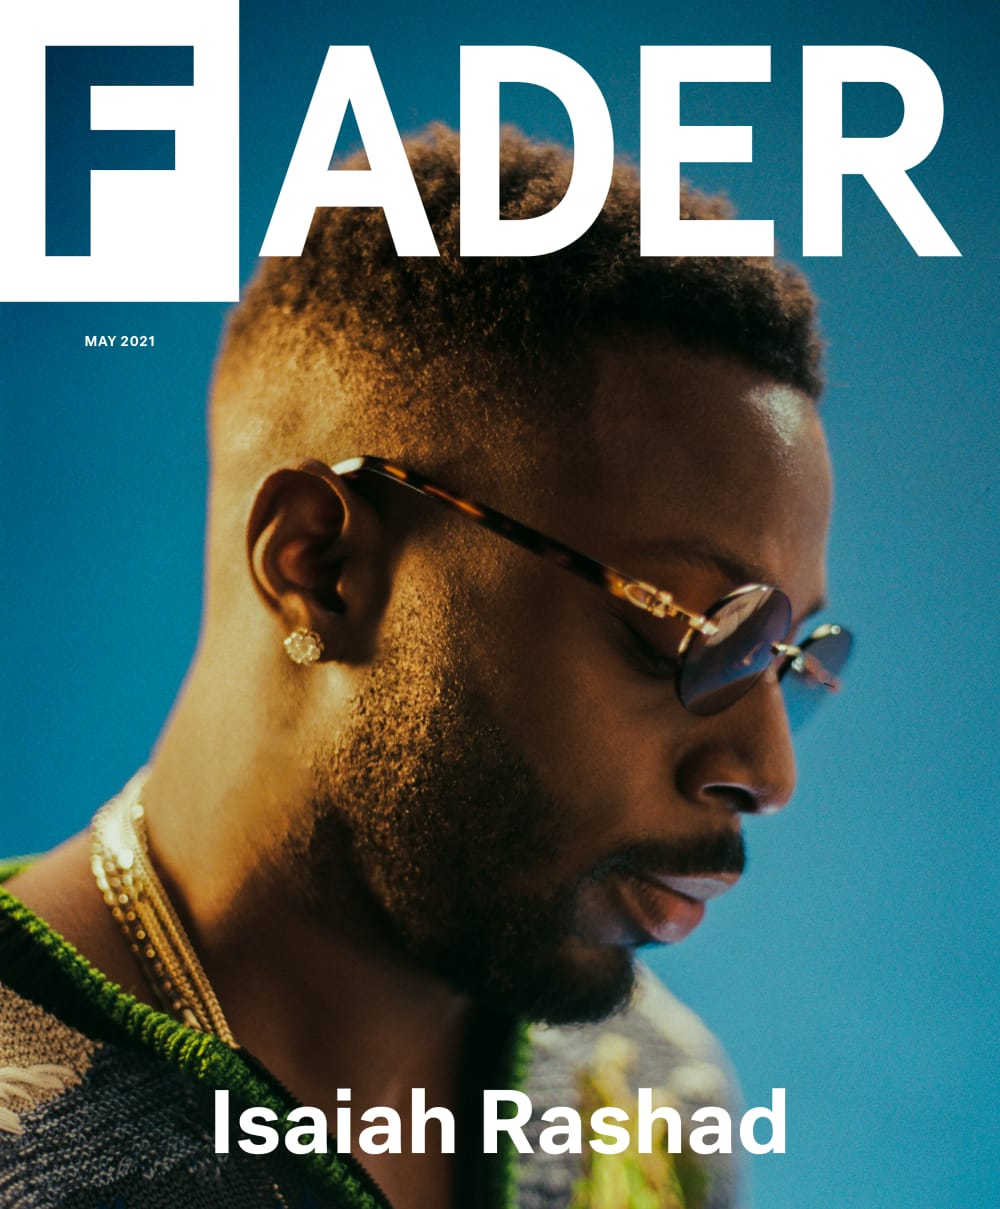 Cover Story: Isaiah Rashad, After the Fire